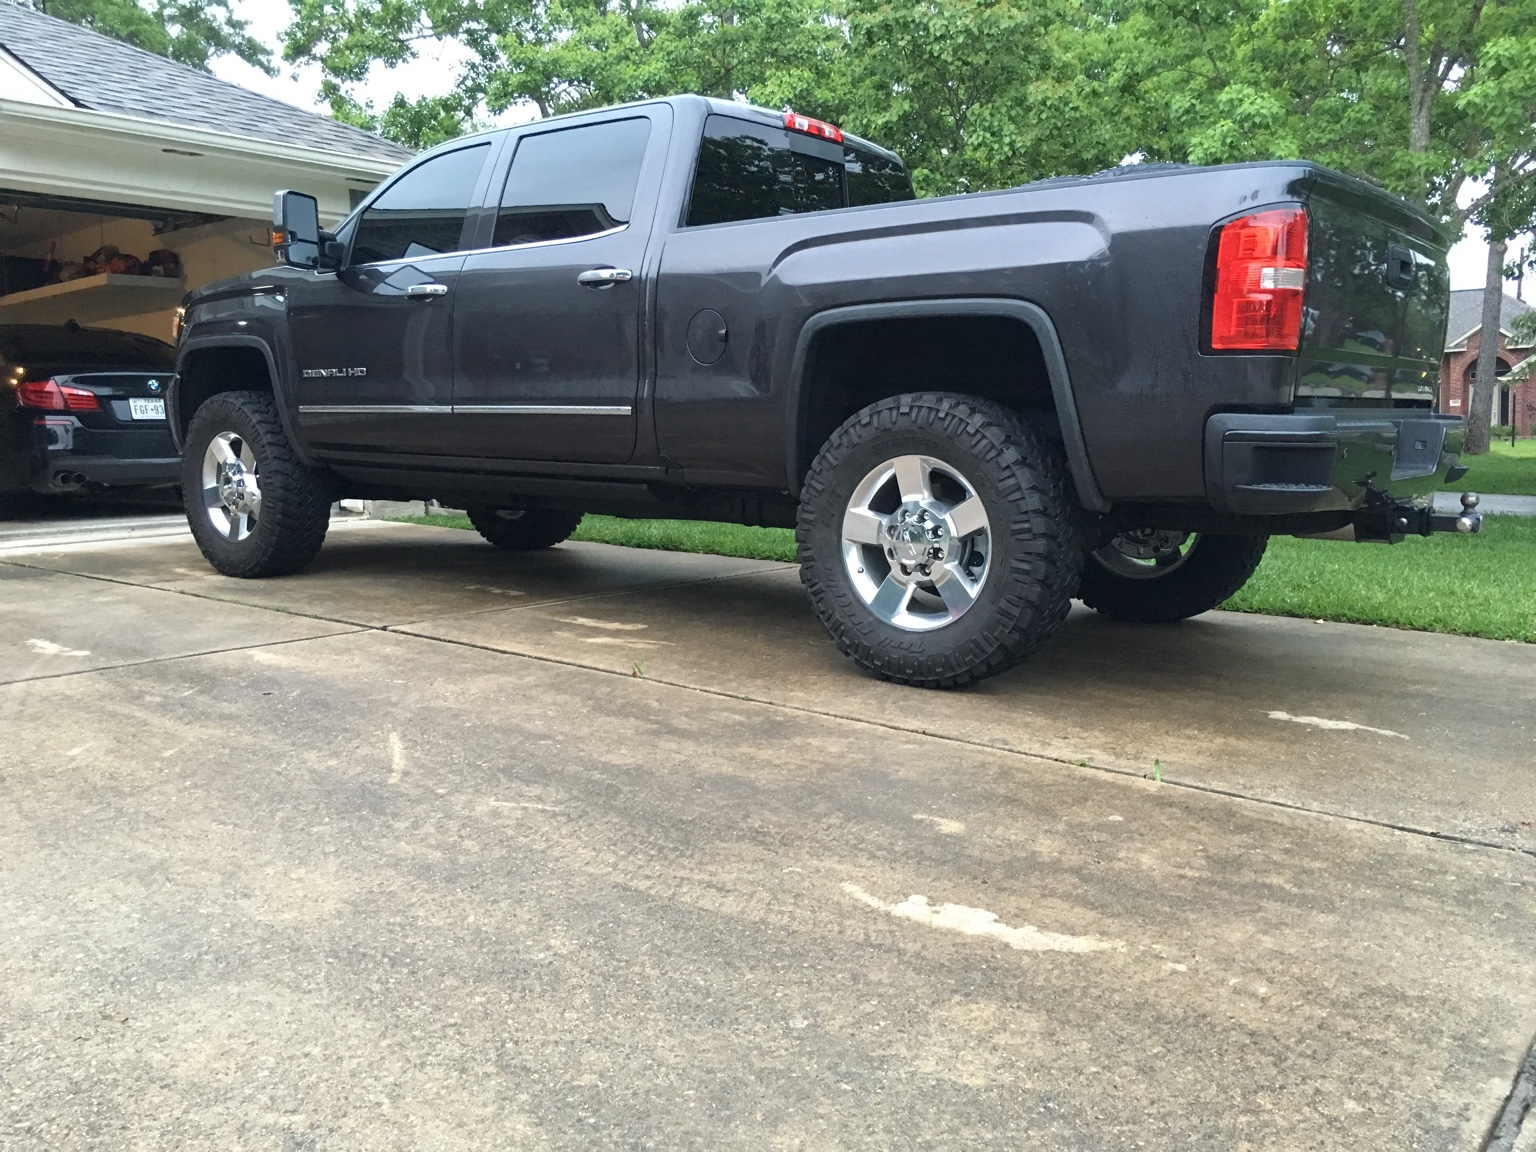 2016 Duramax Specs >> Leveled LML on stock 20's w/Mud Tires. I need pics and ...